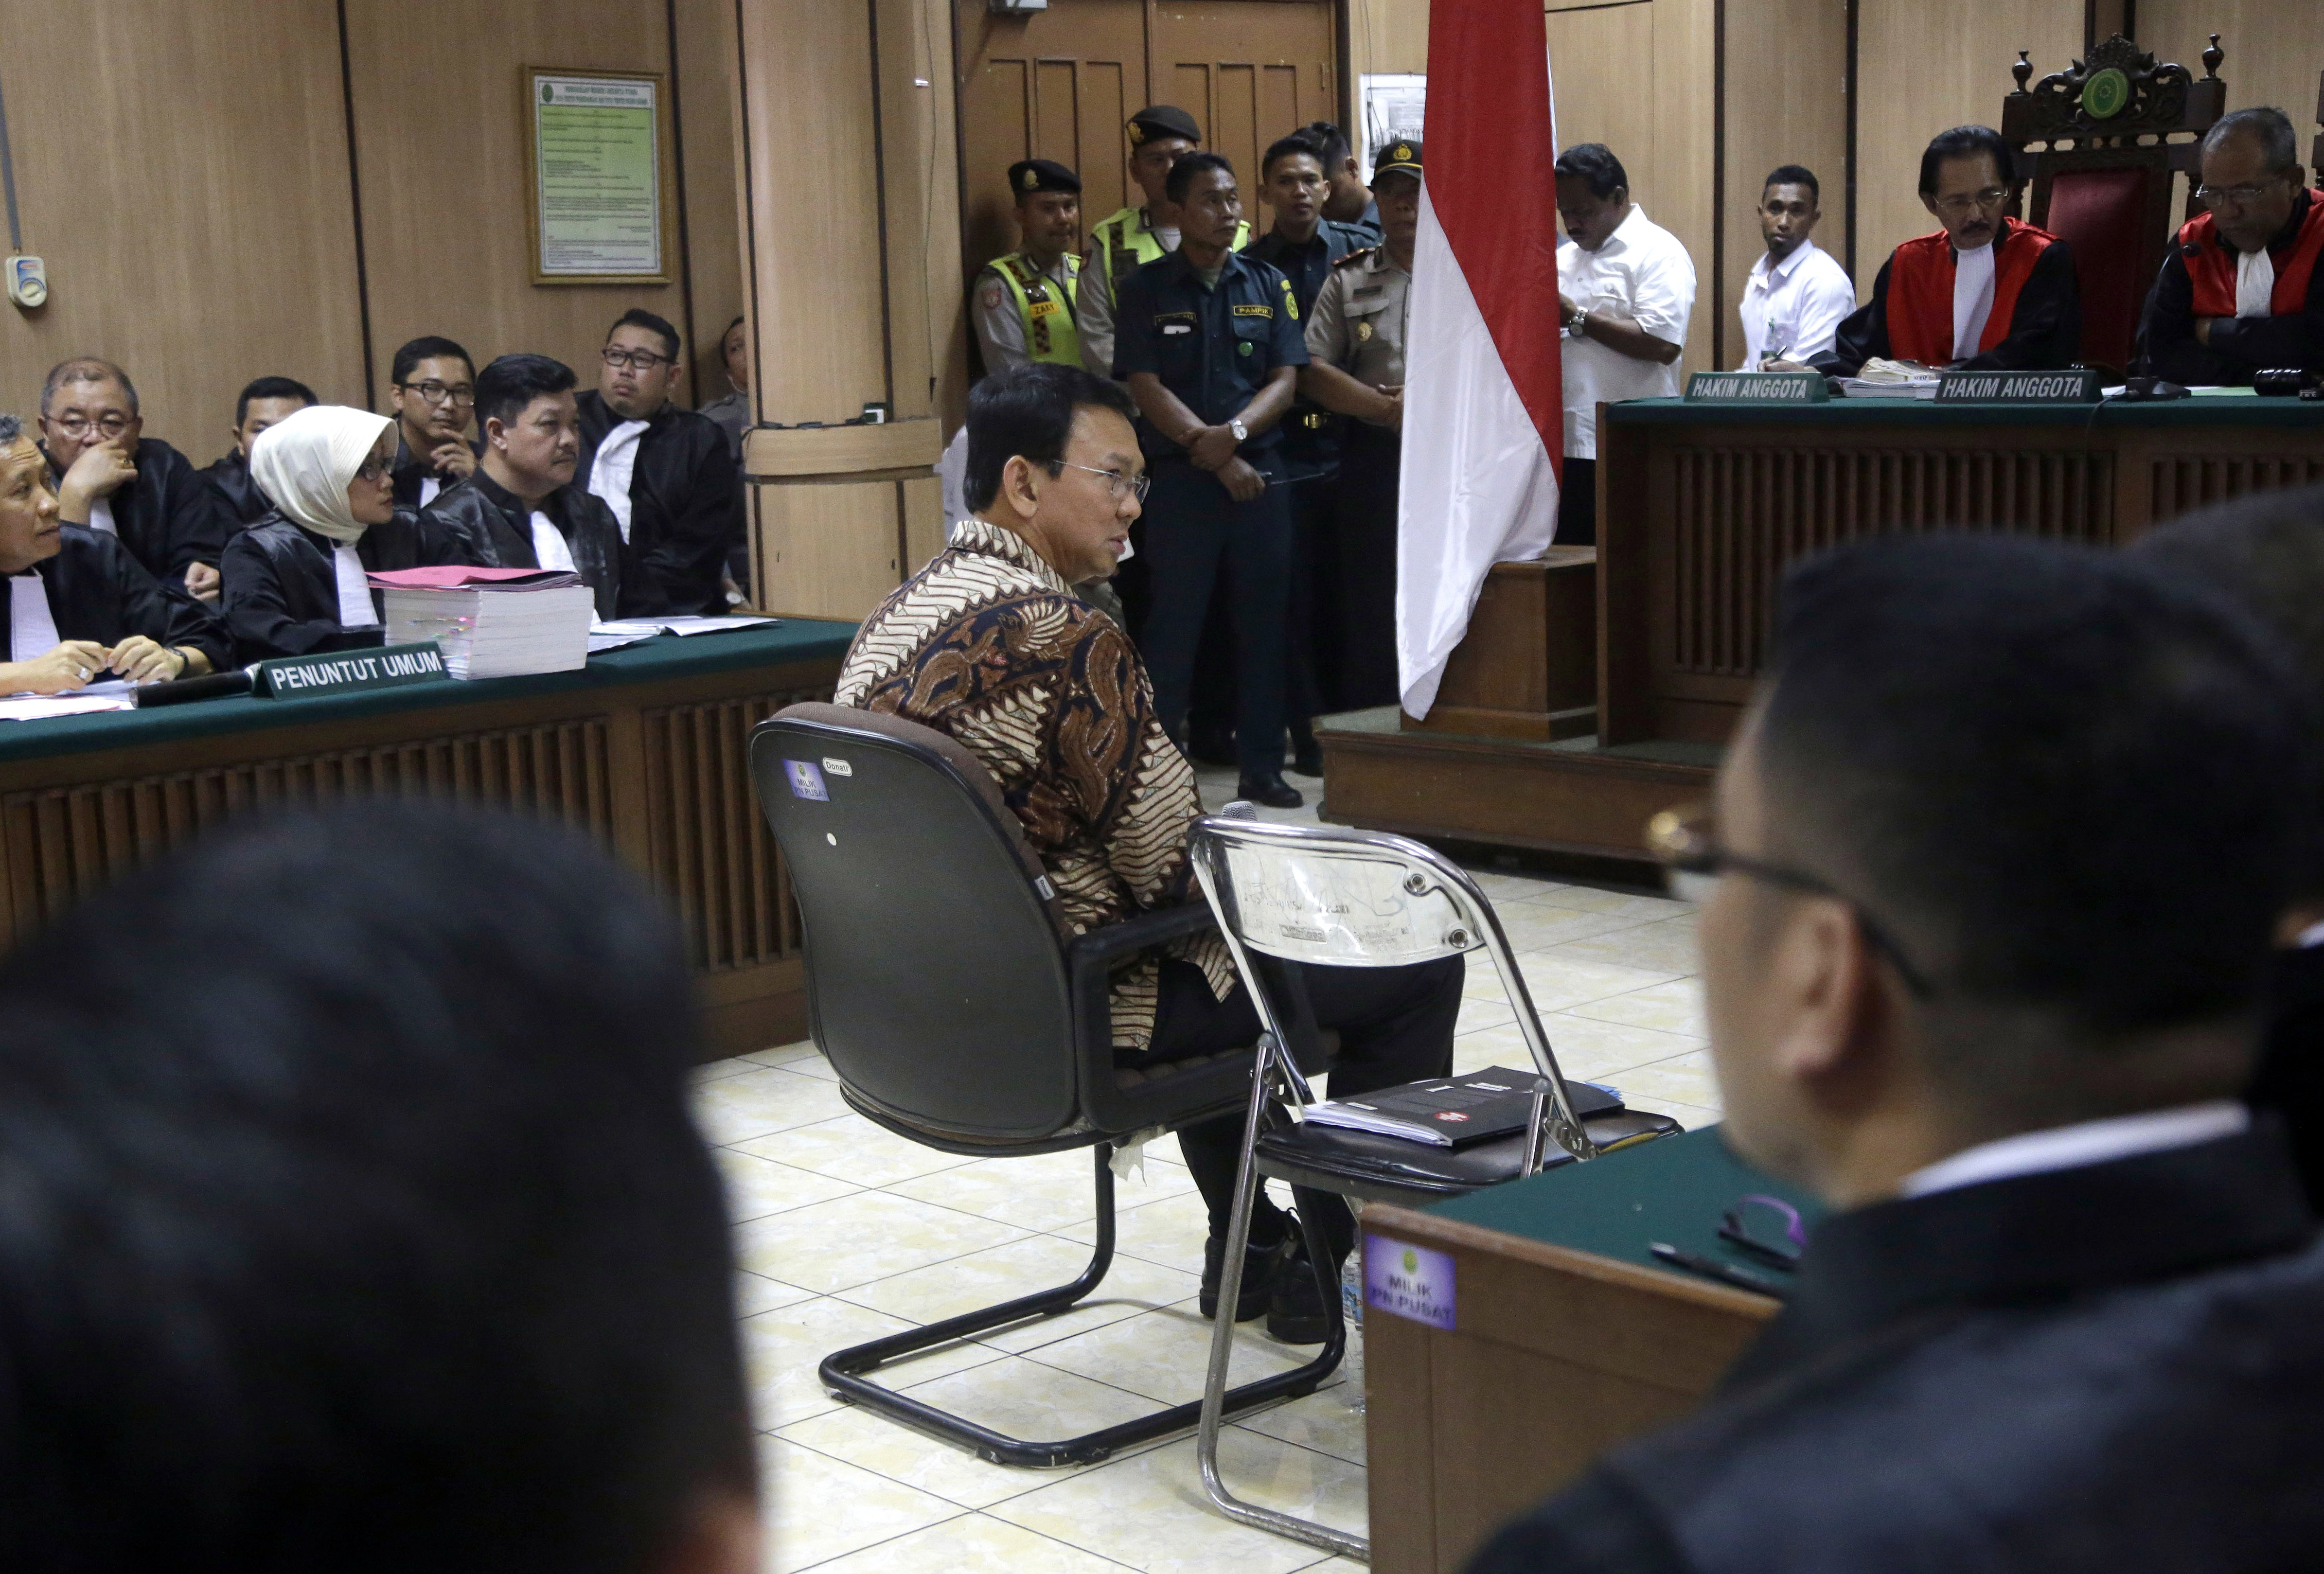 Jakarta Governor Basuki Tjahaja Purnama, popularly known as Ahok, center, sits on the defendant's chair at the start of his trial hearing at North Jakarta District Court in Jakarta on Dec. 13, 2016. Ahok is on trial on accusation of blasphemy following his remark about a passage in the Quran that could be interpreted as prohibiting Muslims from accepting non-Muslims as leaders